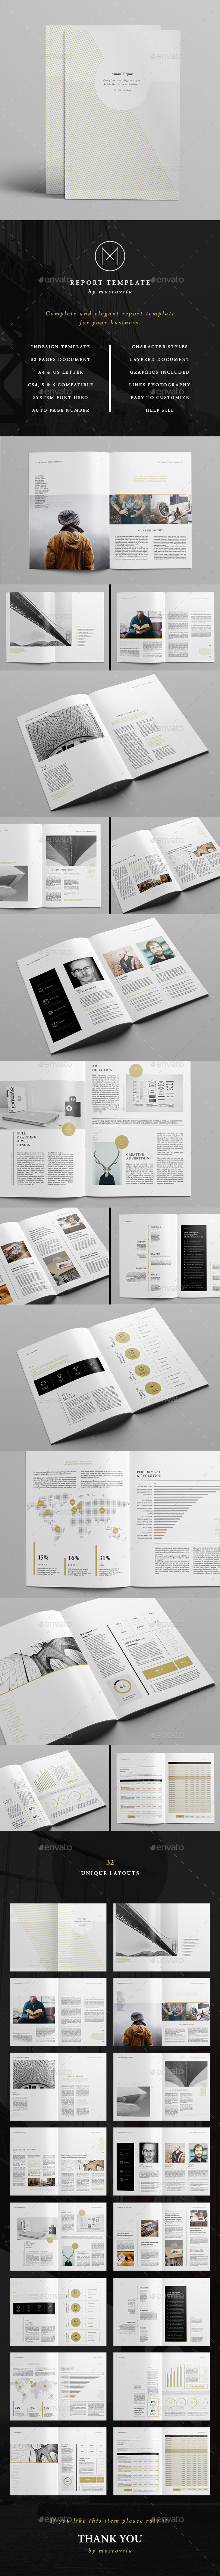 Report - Informational Brochures